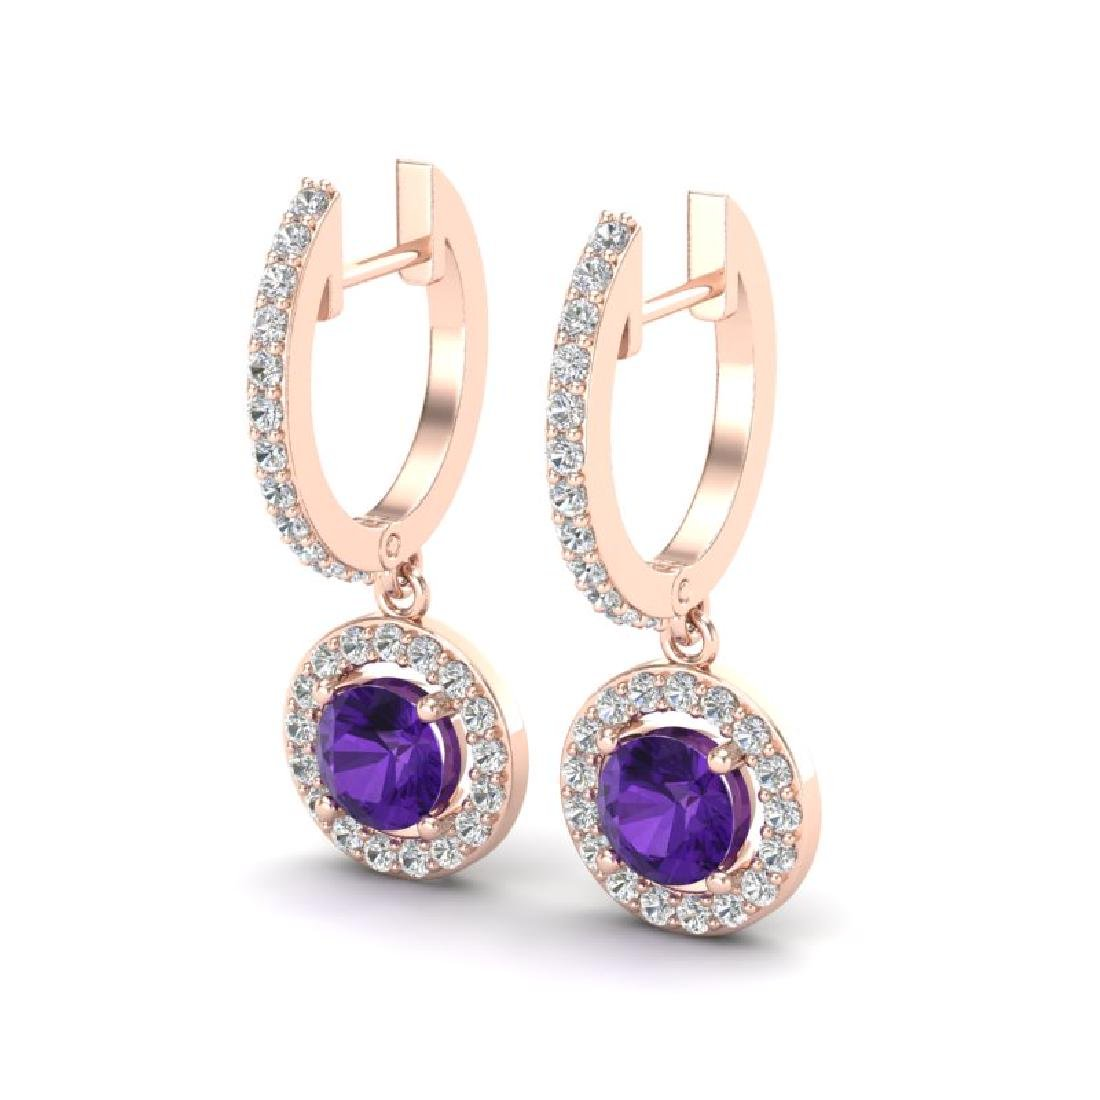 1.75 CTW Amethyst & Micro Pave Halo VS/SI Diamond